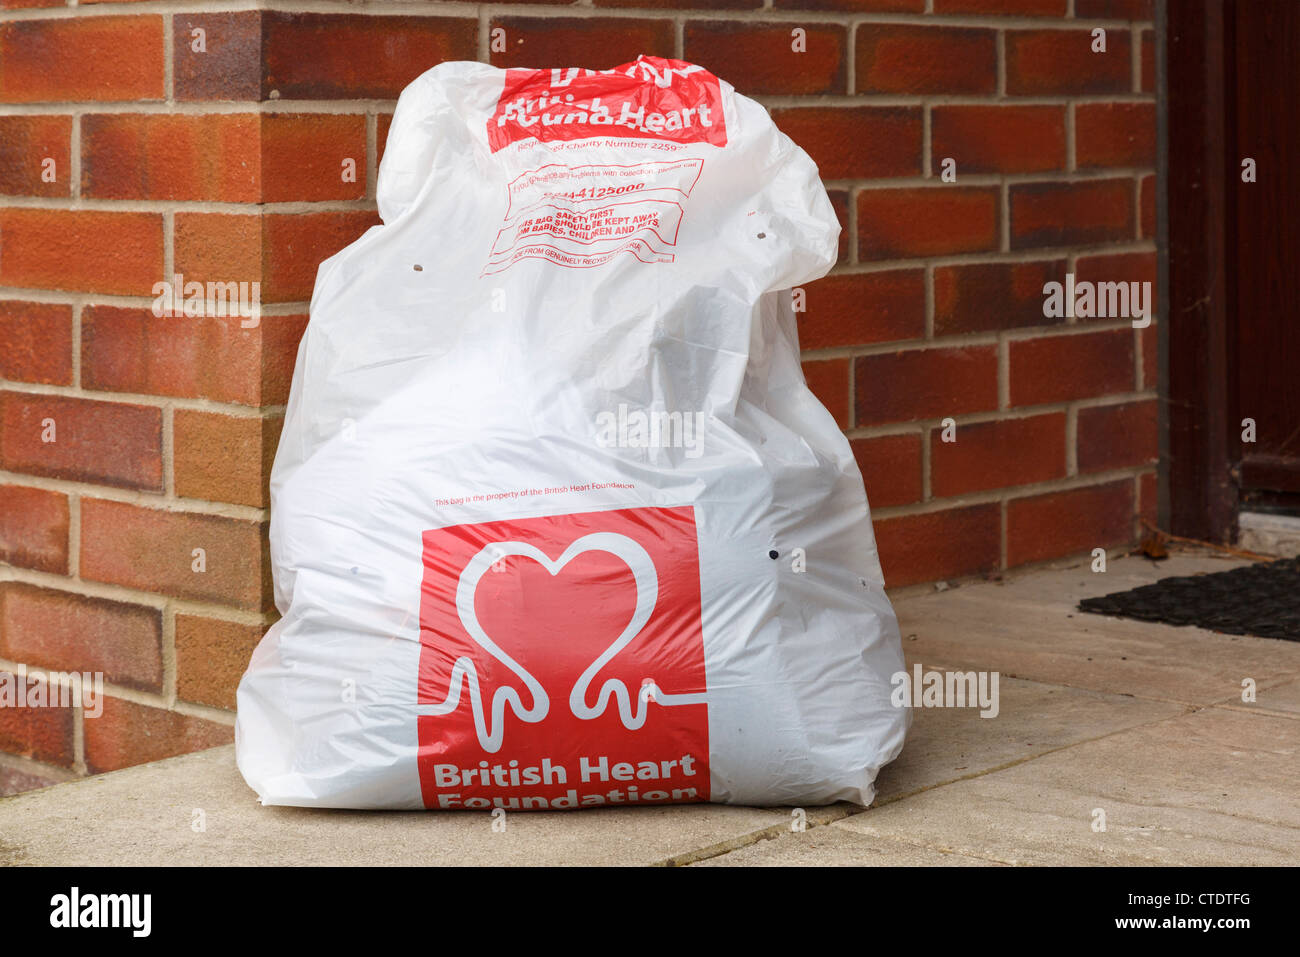 5b9492d893 British Heart Foundation charity clothes recycling bag full of old clothing  for collection outside a house. England UK Britain